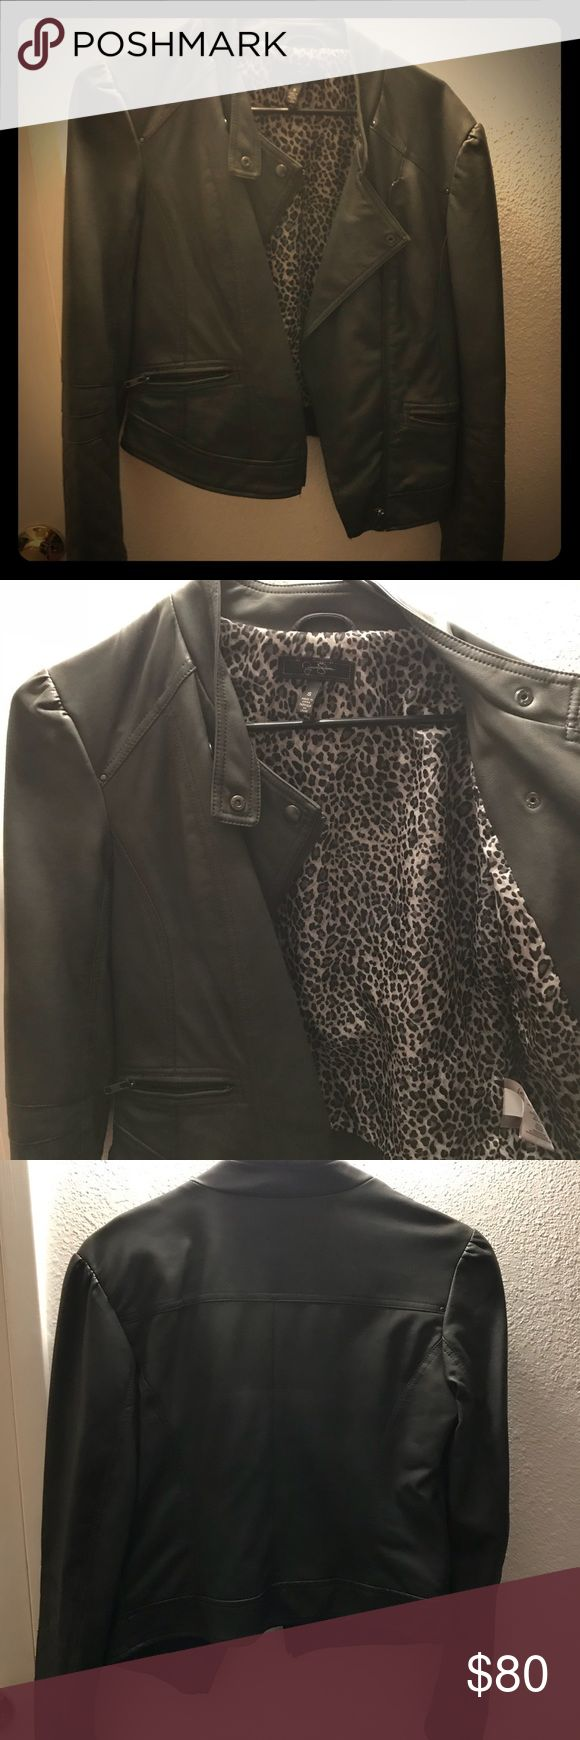 📍🎉PRICE DROP🎉Jessica Simpson Leather Jacket Jessica Simpson authentic leather jacket. Brand new never been worn. Adorable  cheetah pattern inside. You cannot beat this deal for this jacket!! Jessica Simpson Jackets & Coats